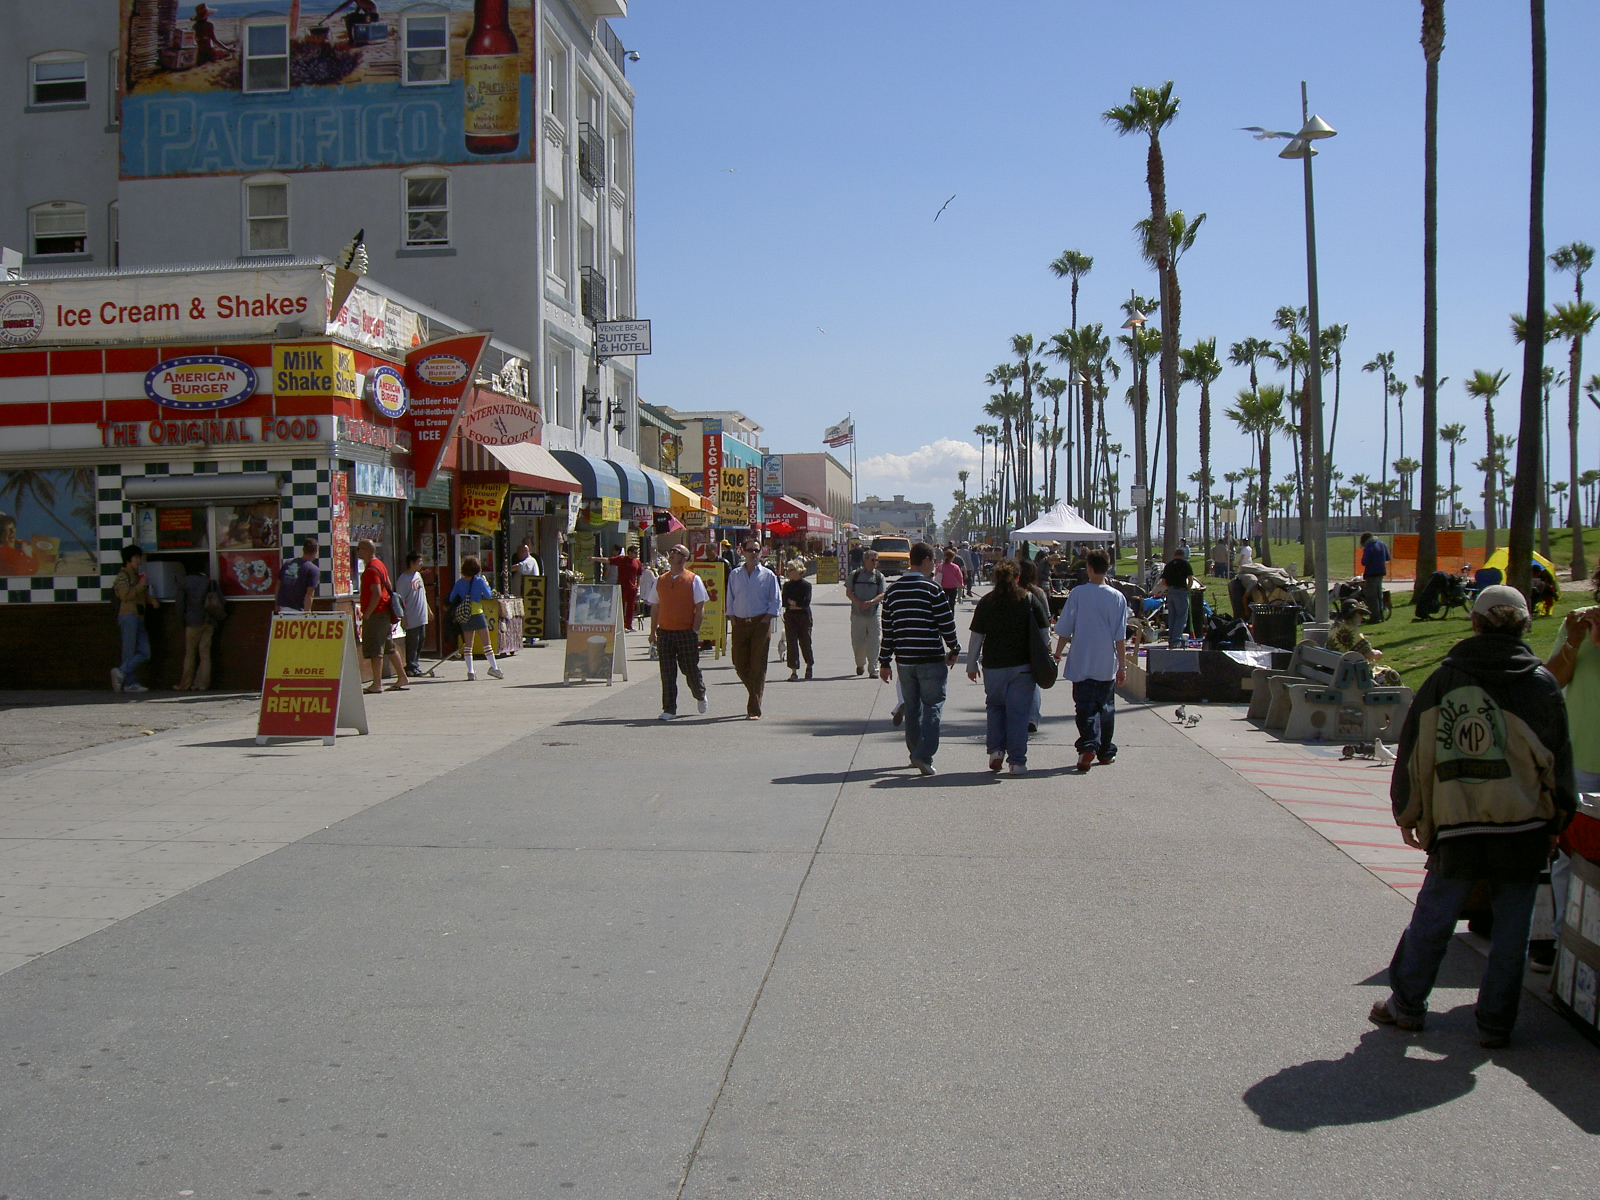 FileVenice Beach promenadeJPG   Wikimedia Commons 1600x1200